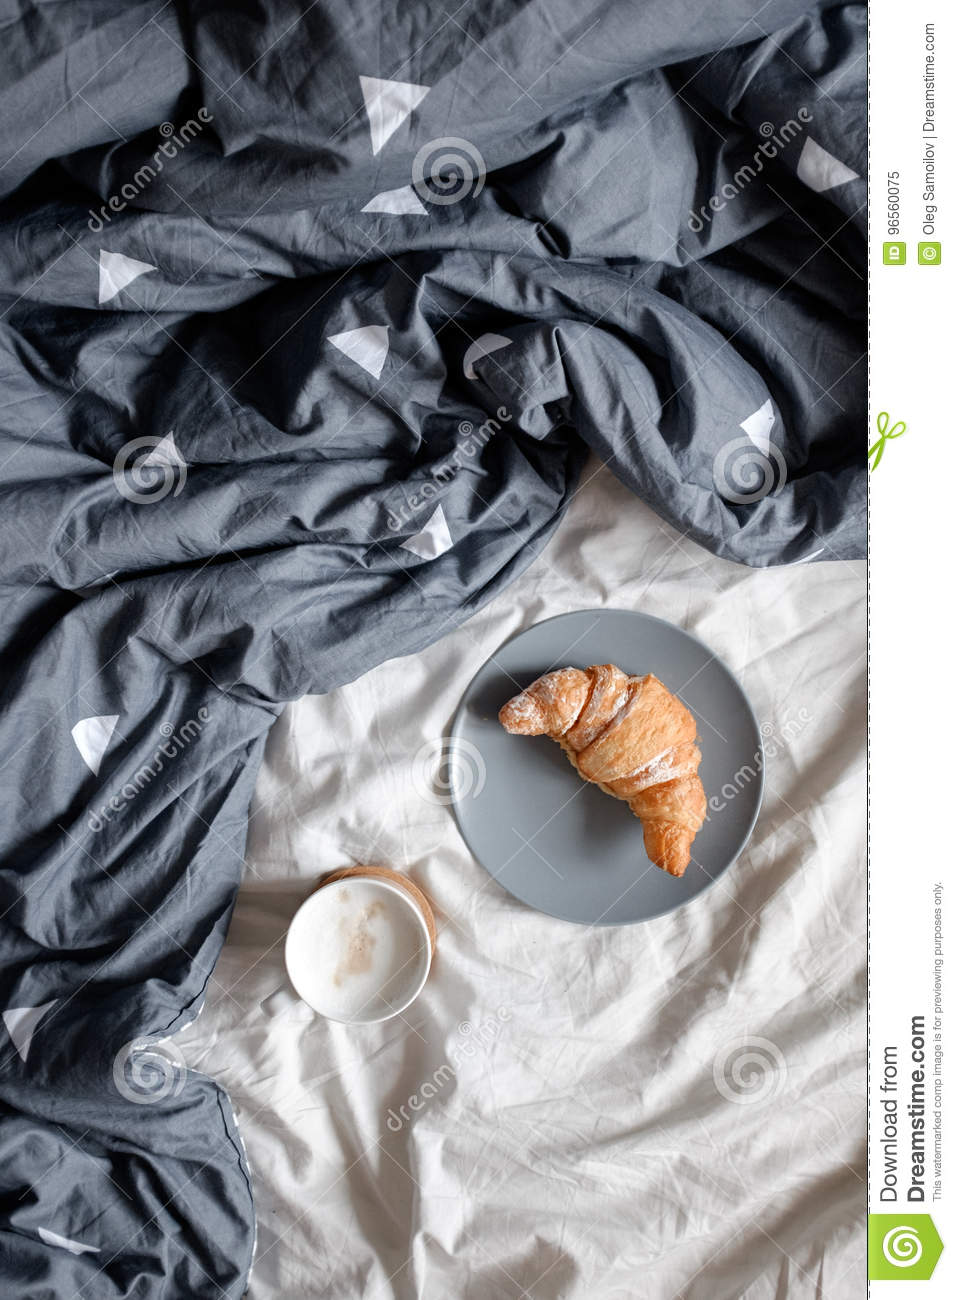 A cup of coffee and a croissant on a plate on a cozy bed